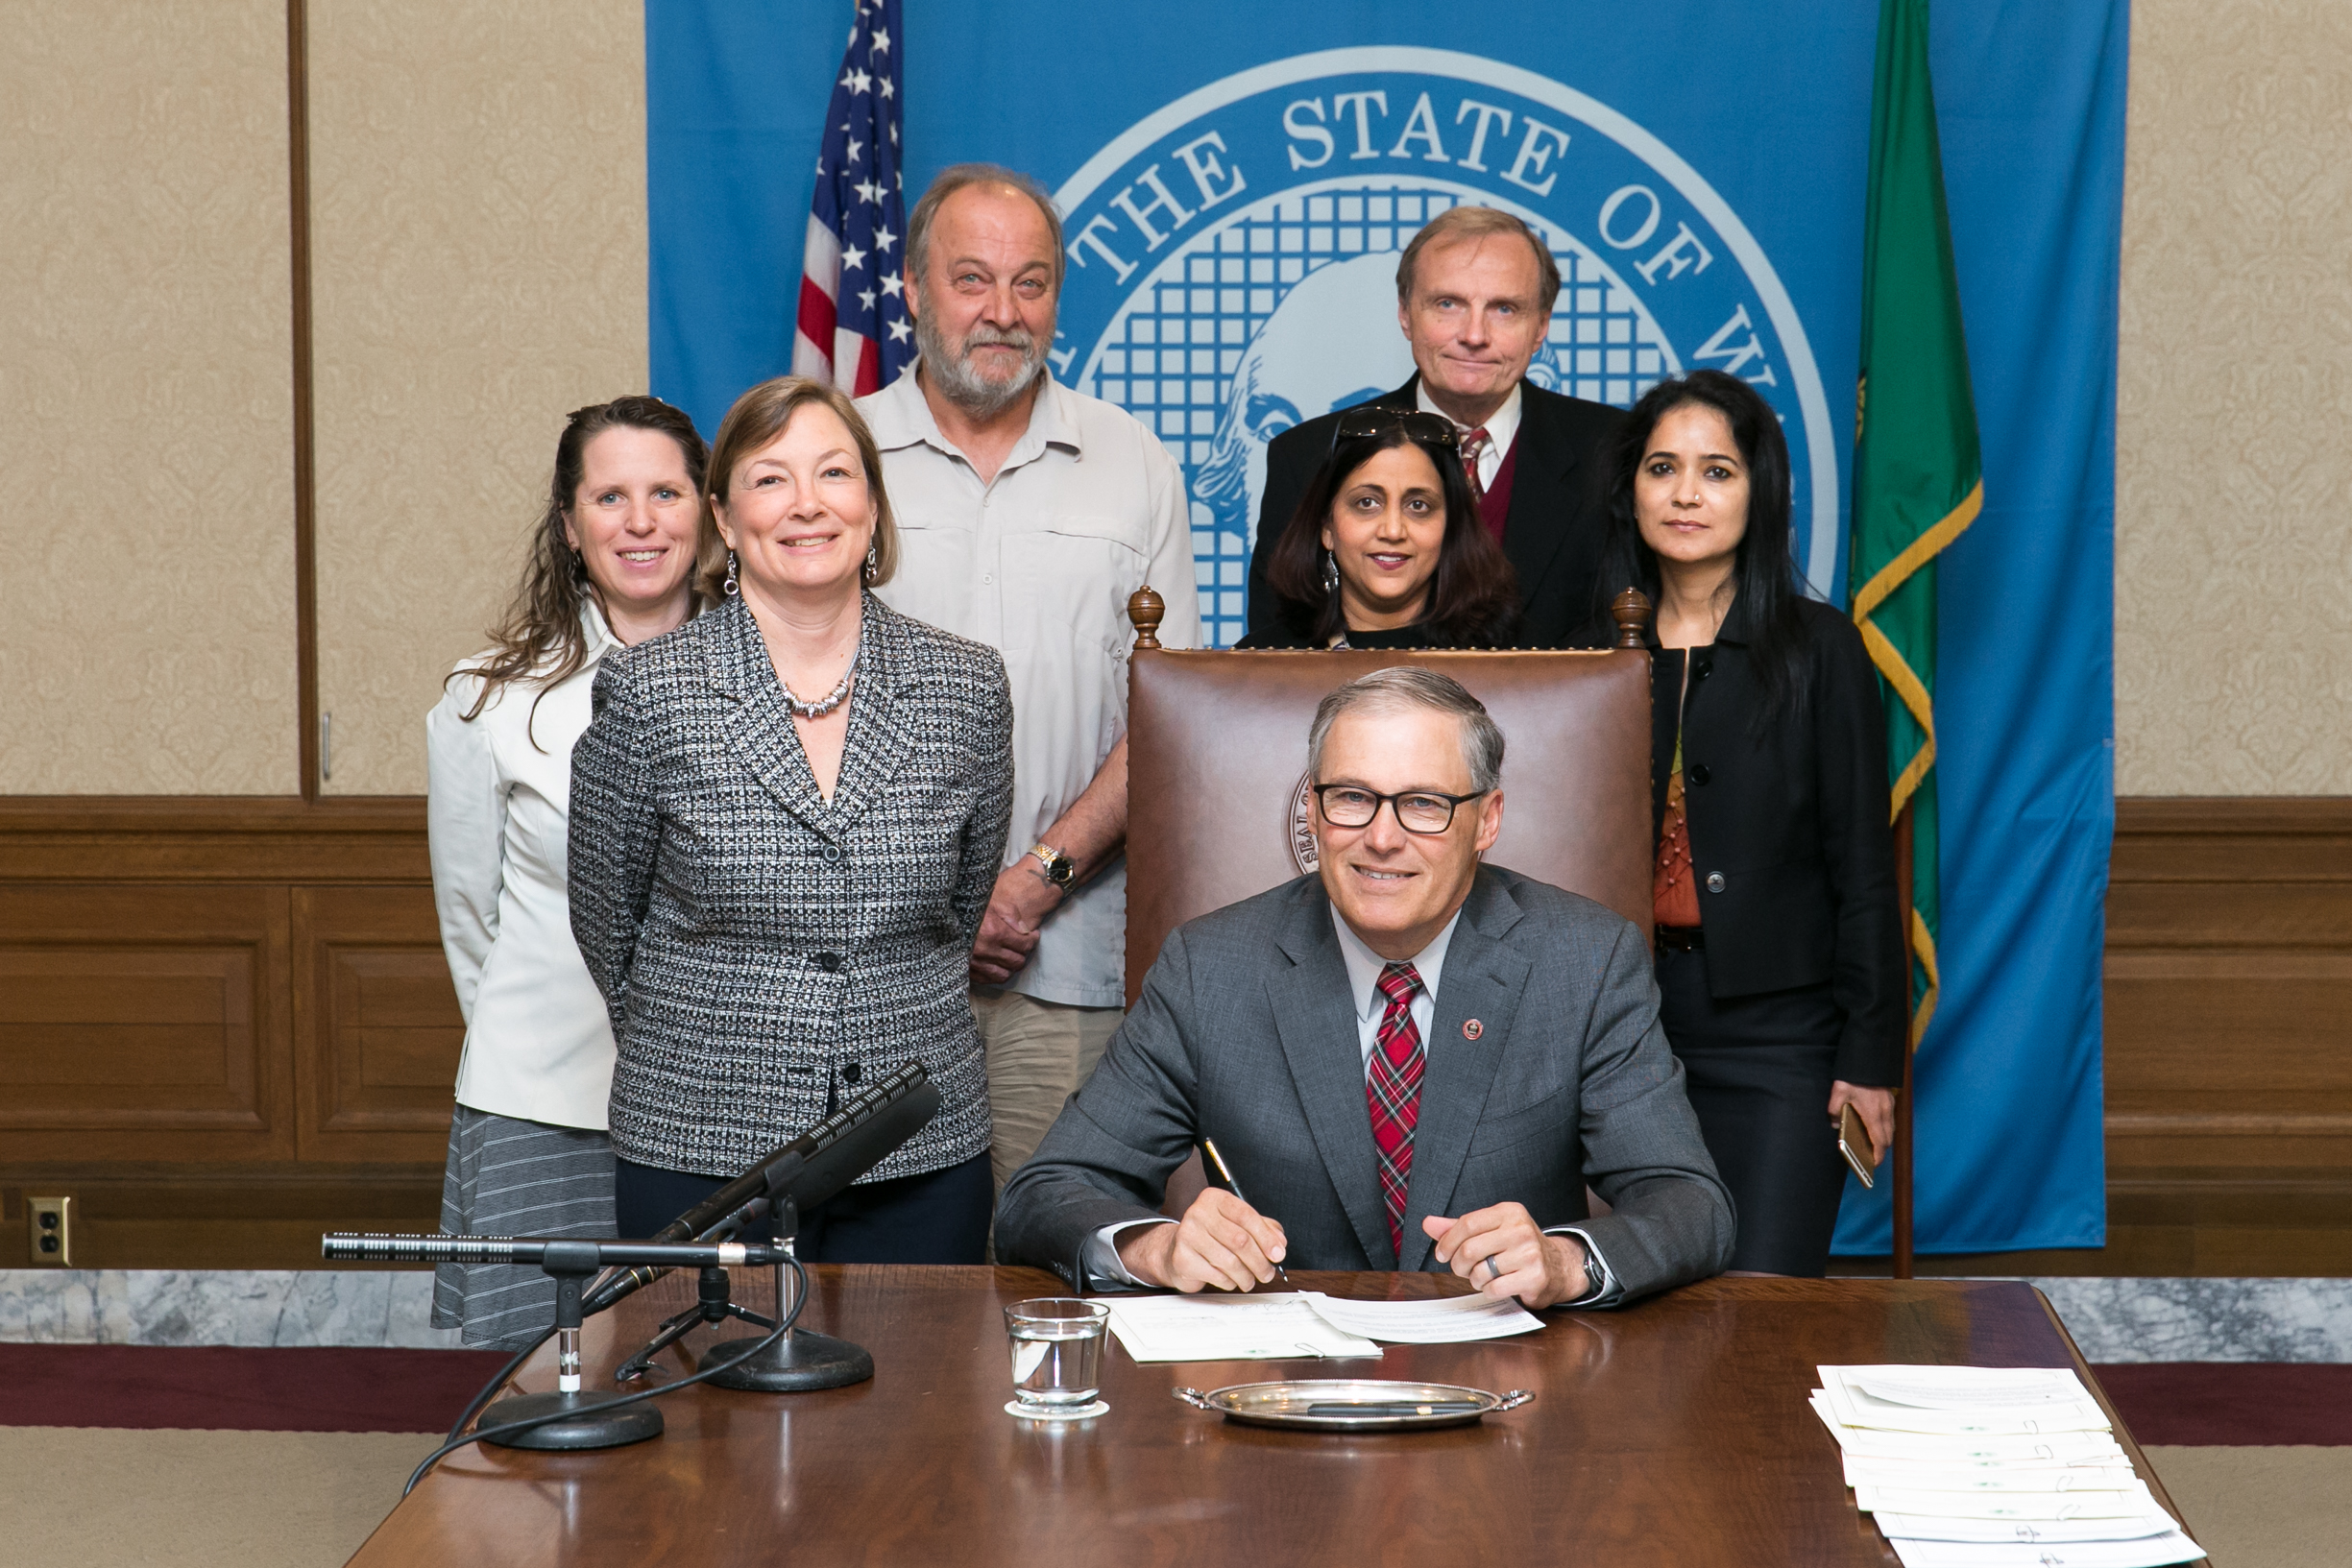 Washington State Legislative Sup